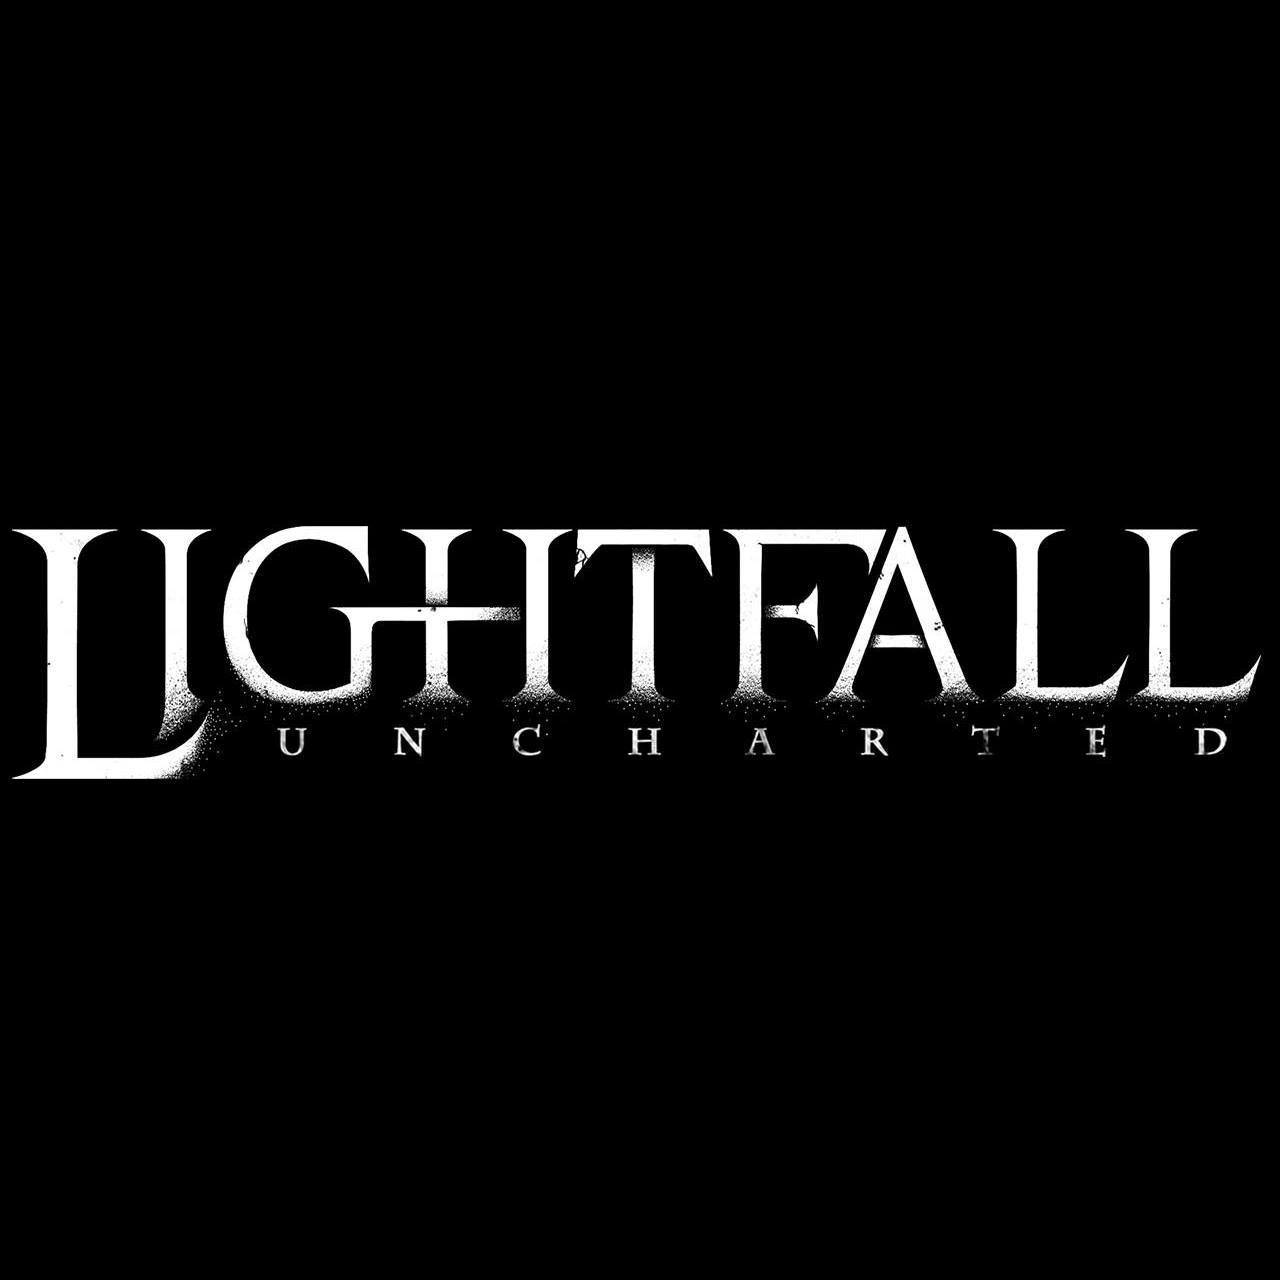 Lightfall - Who We Are [single] (2017)